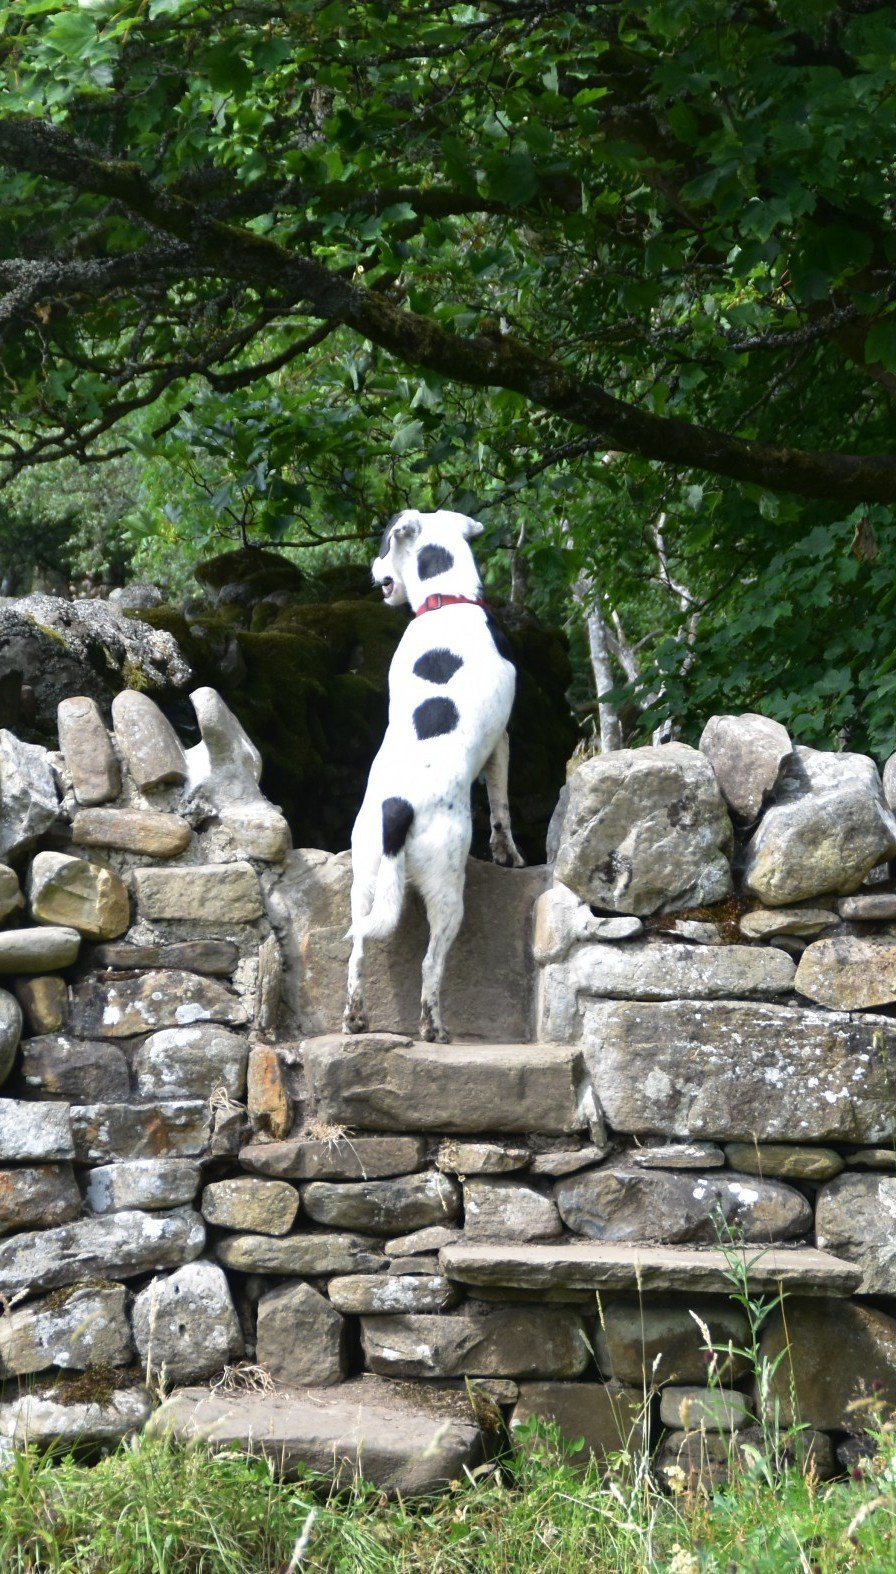 Daisy the dog climbs the steps to peer over a stone wall